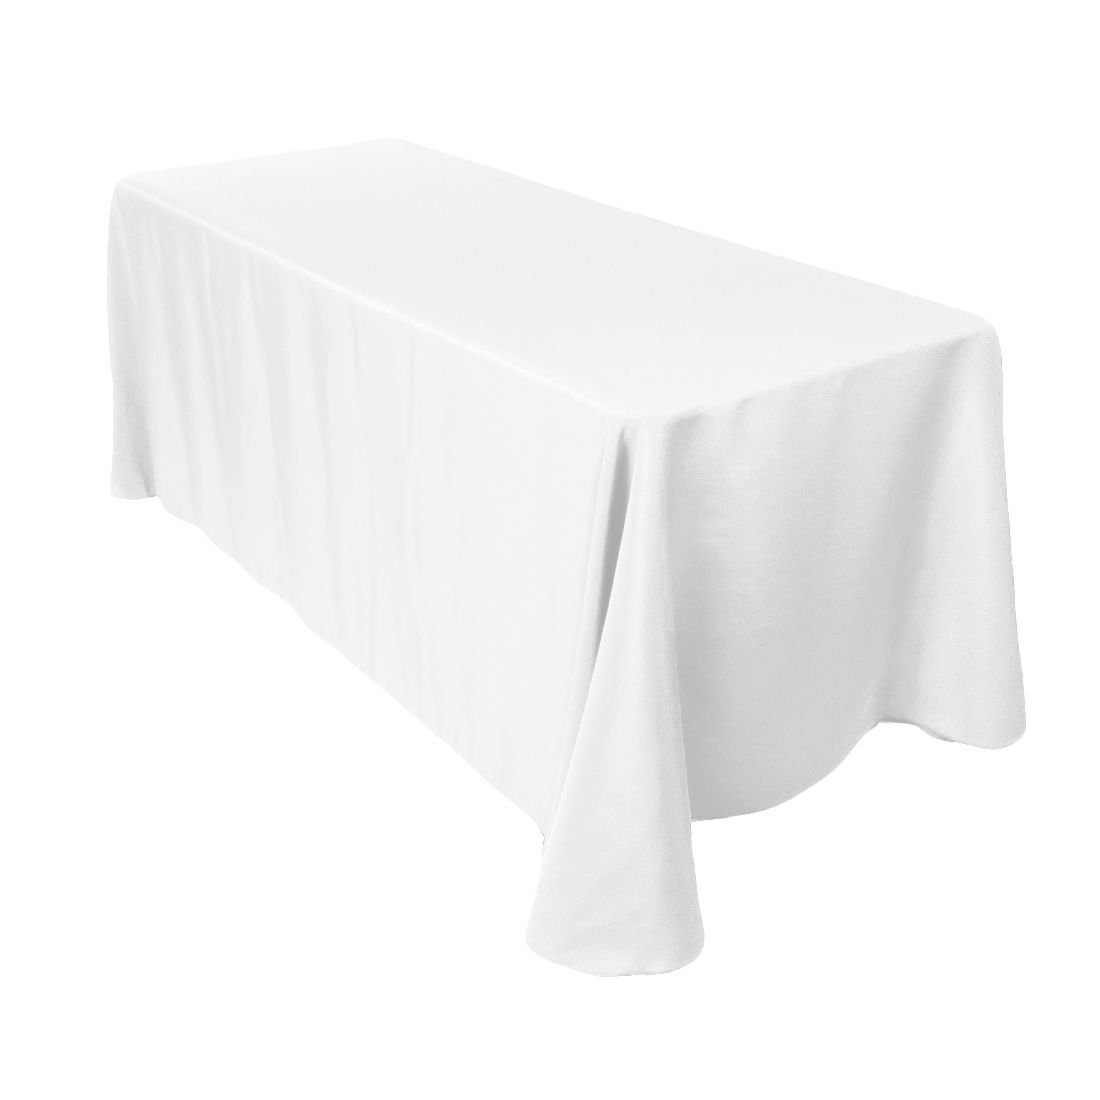 """Gee Di Moda Rectangle Tablecloth - 90 x 132"""" Inch - White Rectangular Table Cloth for 6 Foot Table in Washable Polyester - Great for Buffet Table, Parties, Holiday Dinner, Wedding & More"""